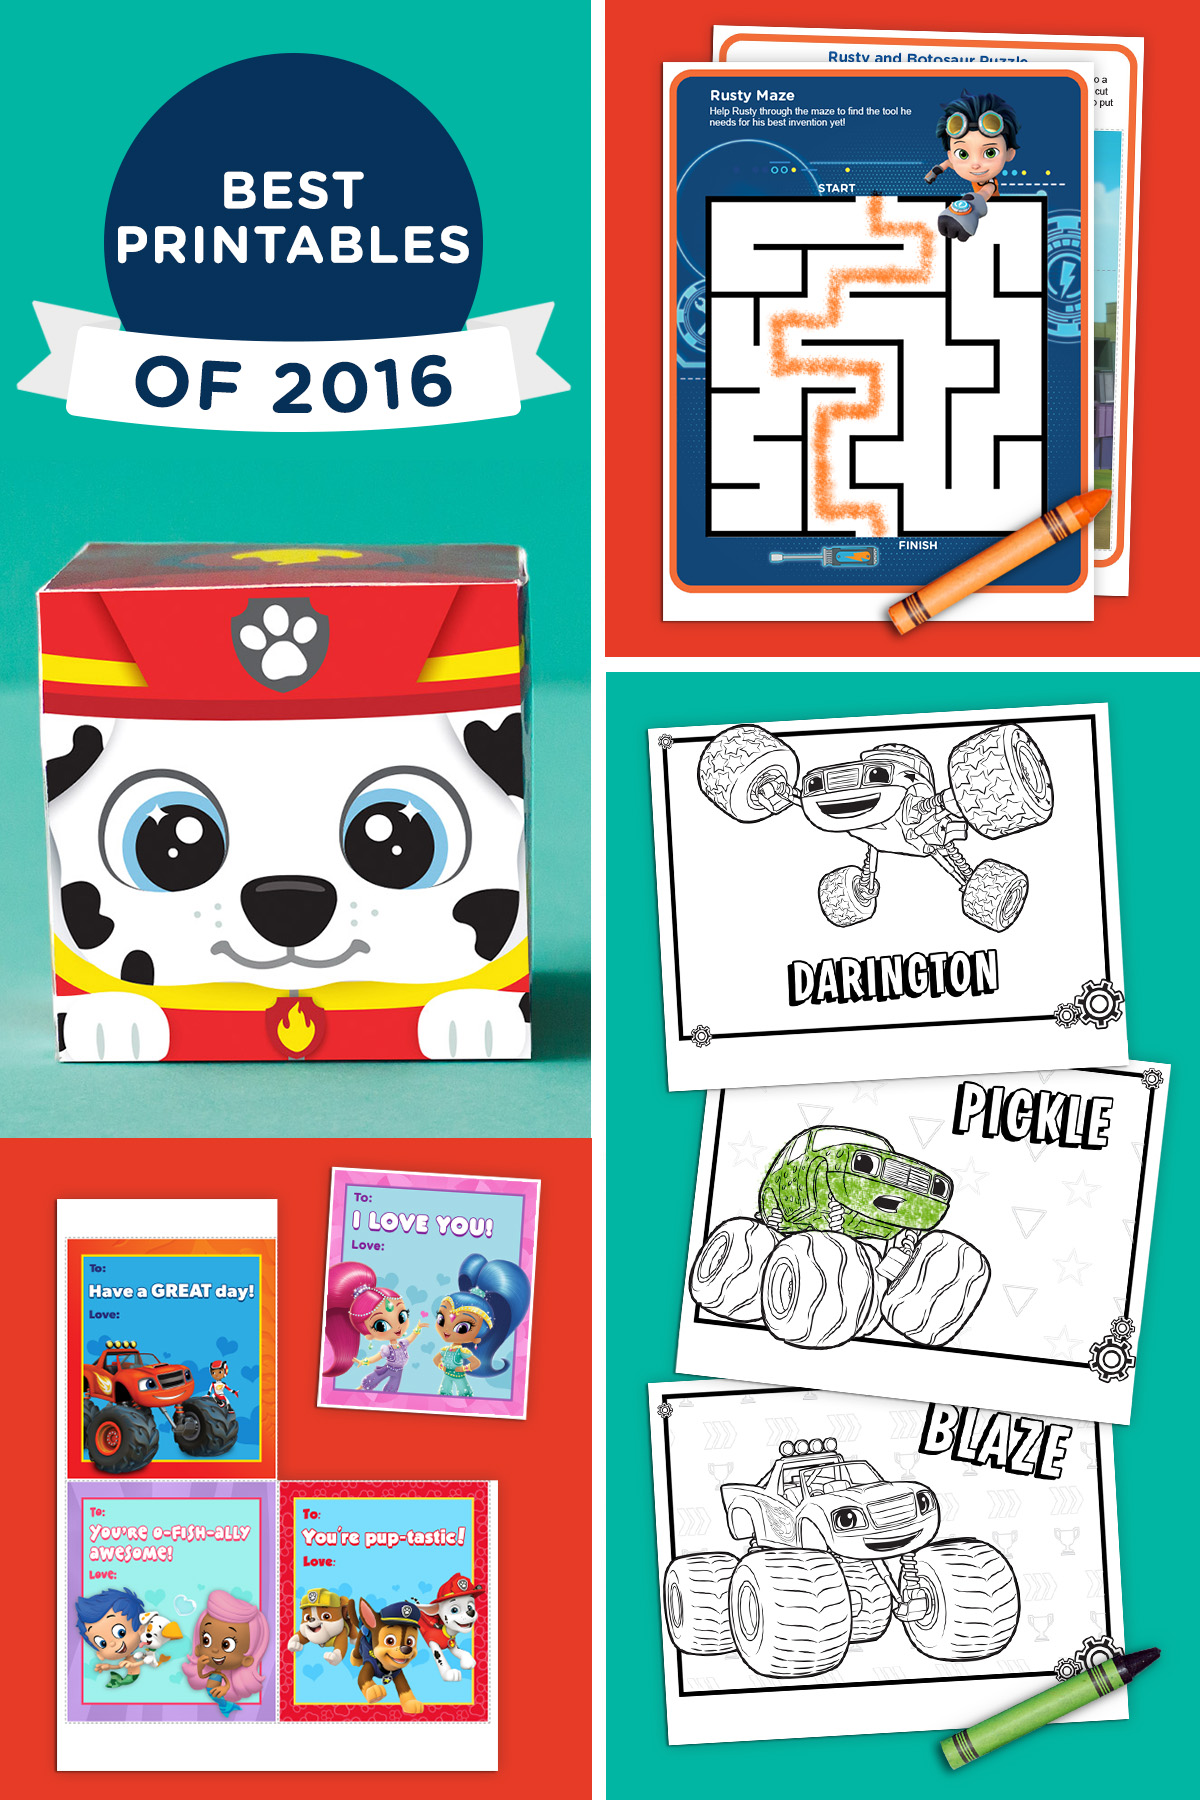 picture regarding Nick Jr Printable Coloring Pages named The Most straightforward Nick Jr. Printables of 2016 Nickelodeon Mothers and fathers